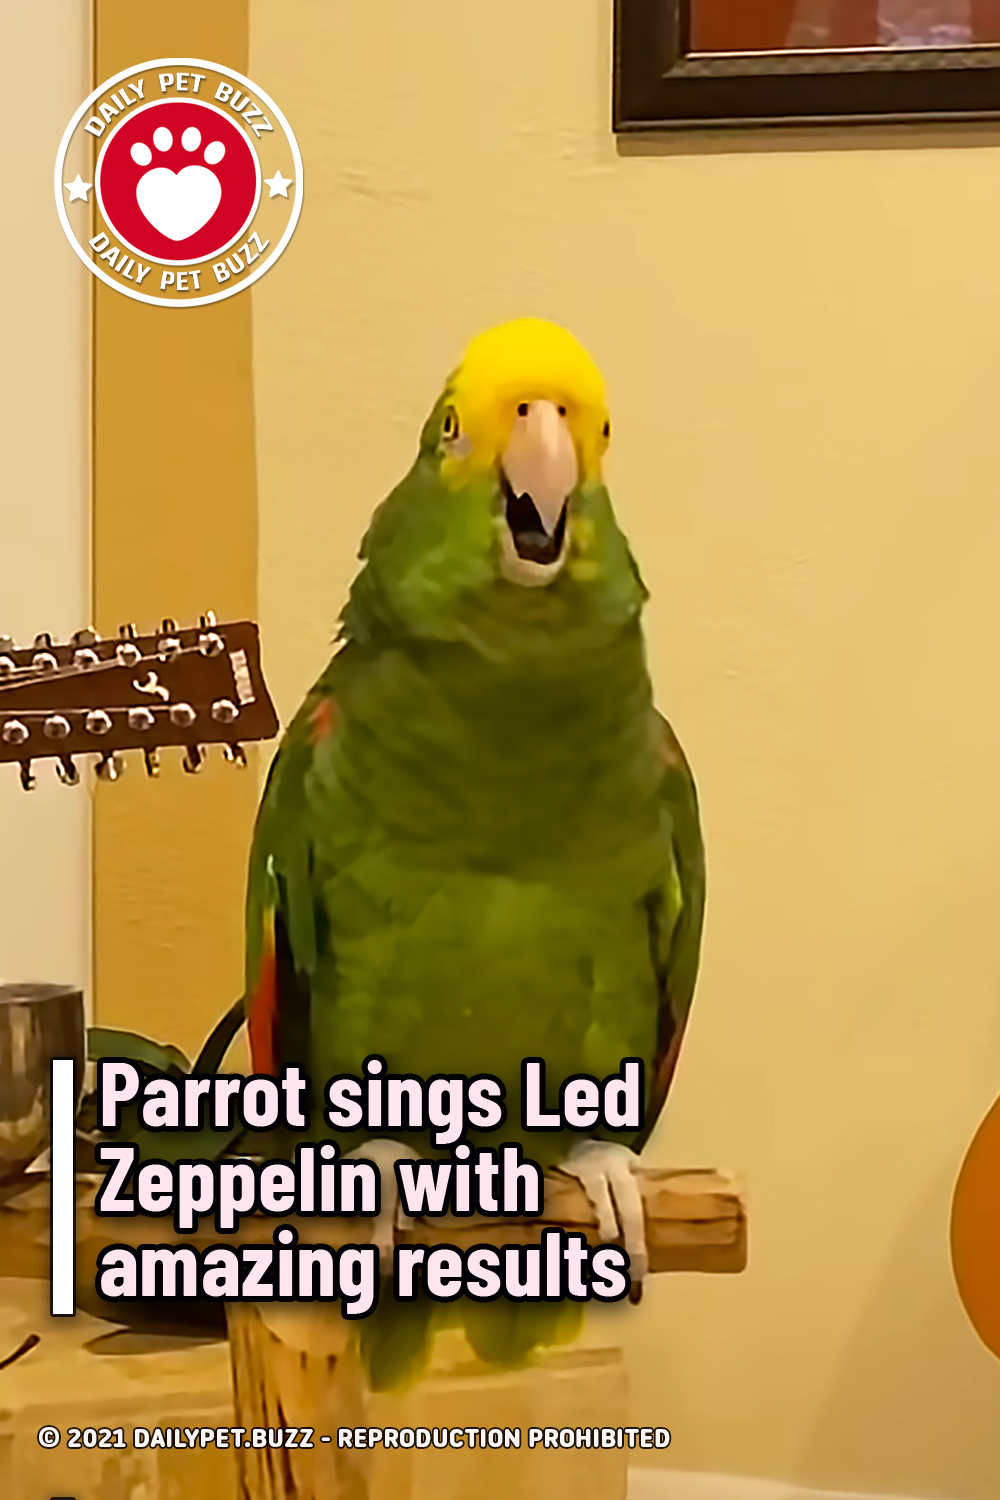 Parrot sings Led Zeppelin with amazing results